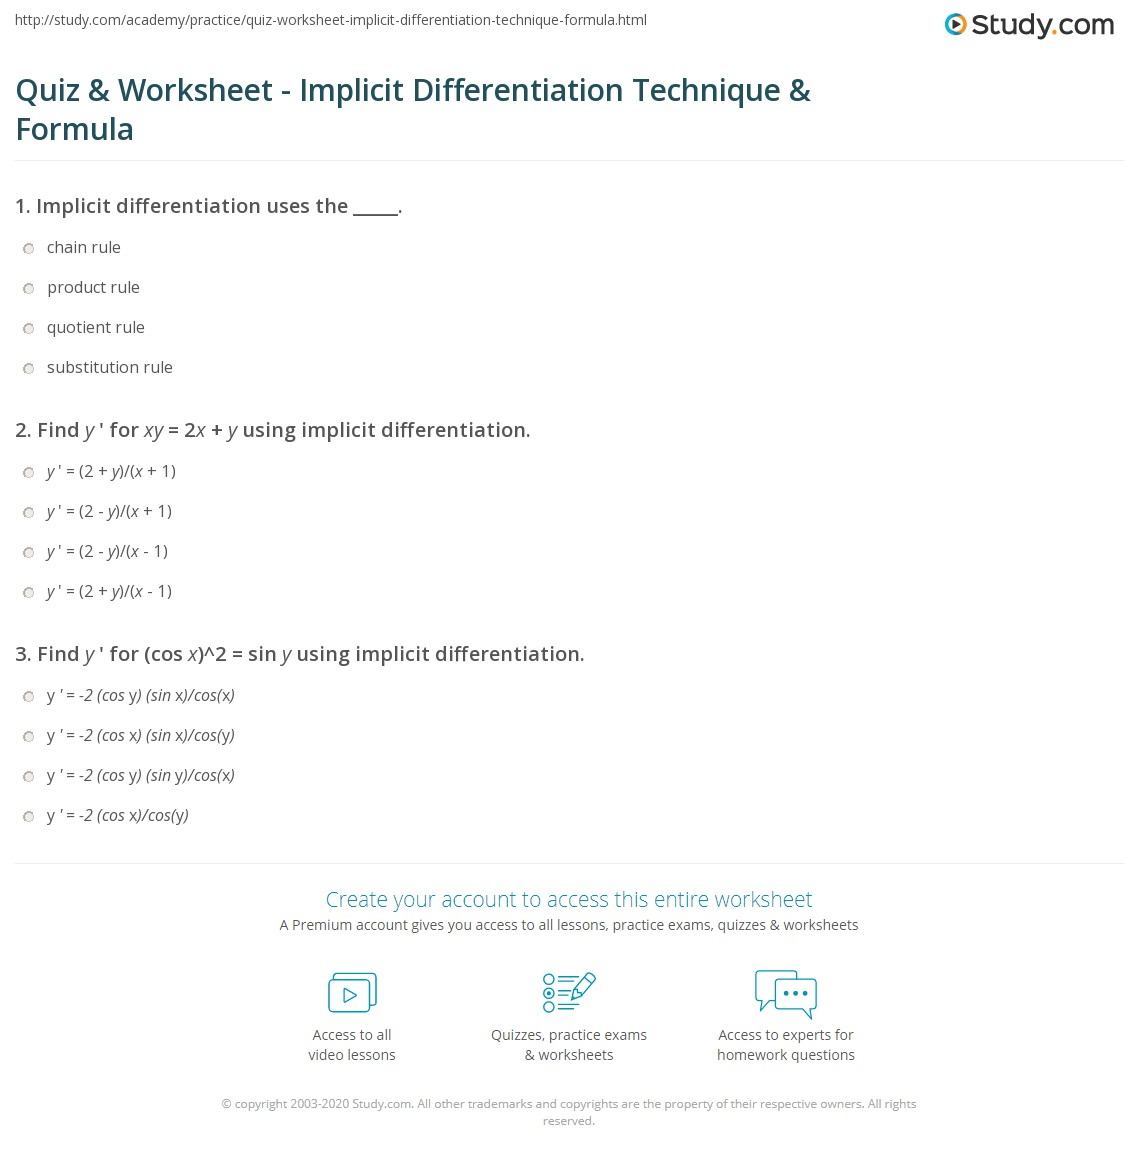 Worksheets Implicit Differentiation Worksheet quiz worksheet implicit differentiation technique formula print examples worksheet